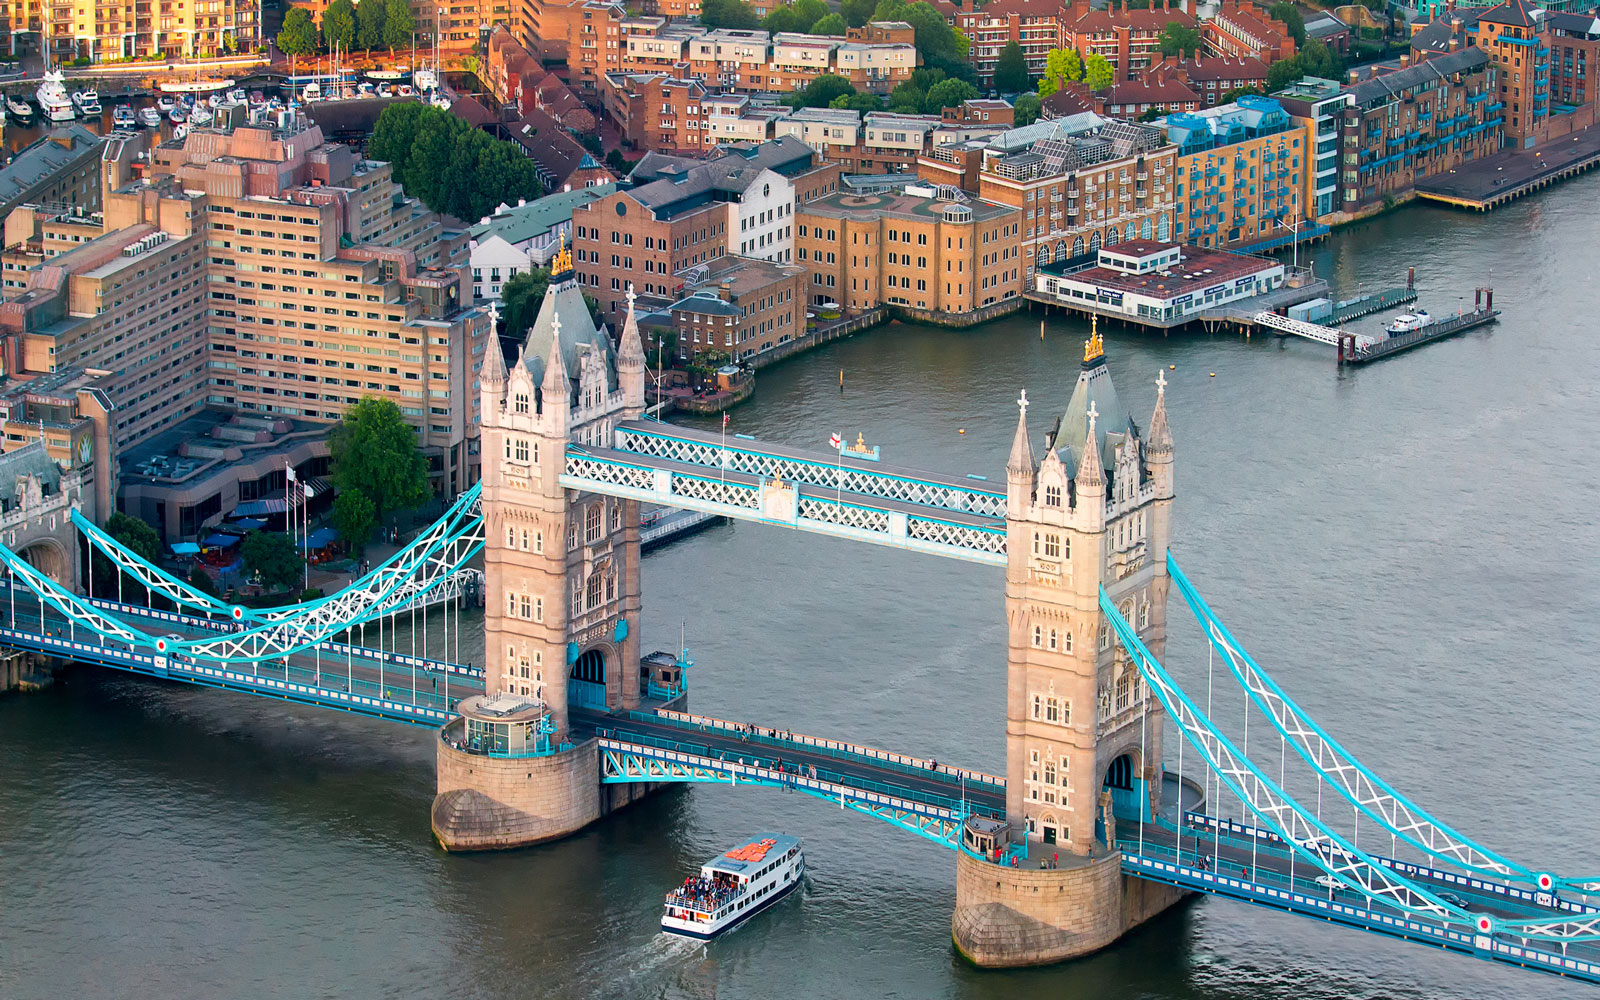 Virgin Atlantic Has $358 Round-trip Flights to London — But You'll Have to Book Fast